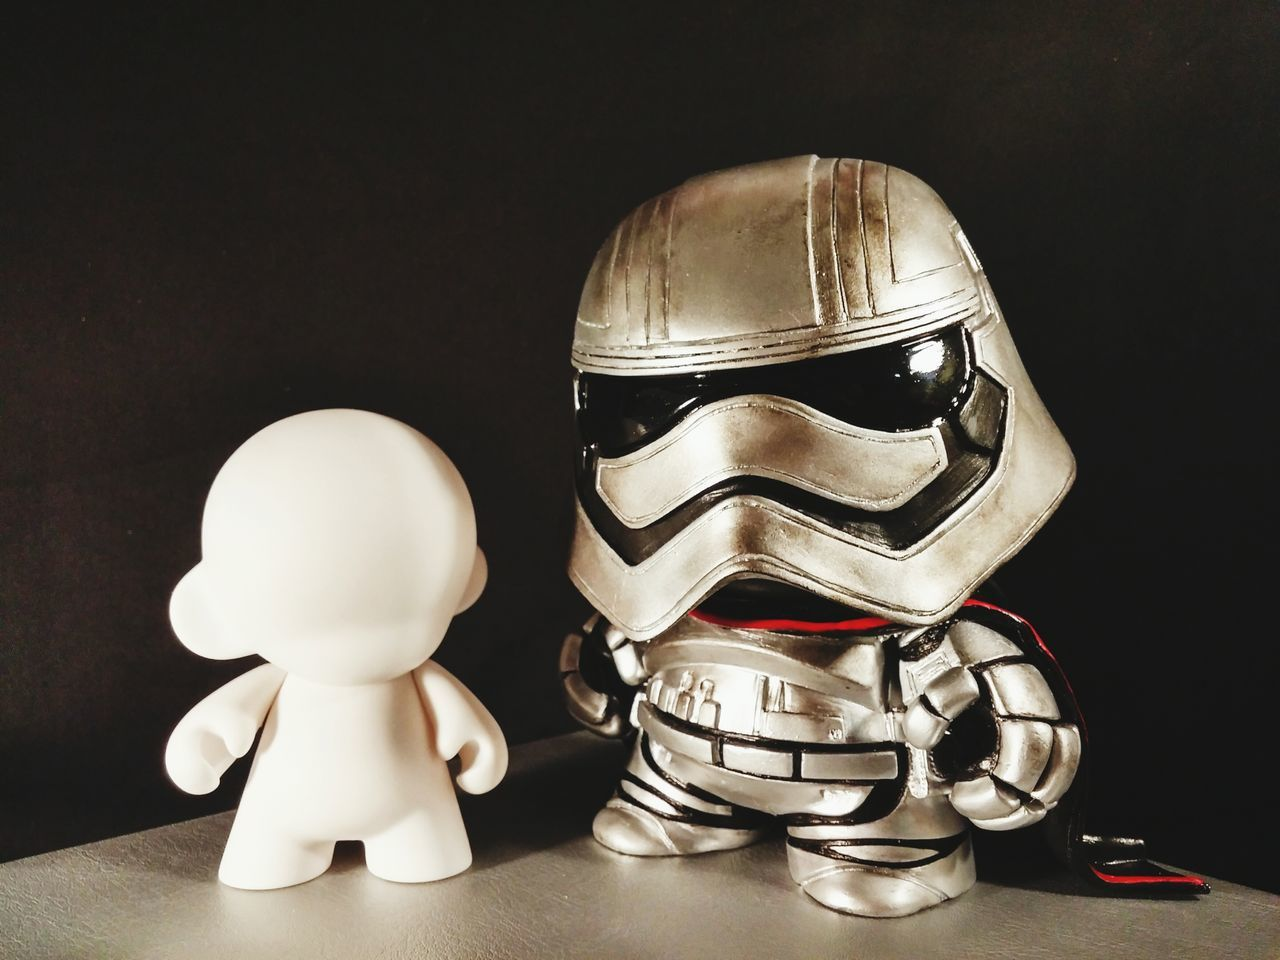 Munny Kidrobot Star Wars Captain Phasma The Force Awakens First Order Starwars Darthvader Starwarsfan Sculpture UrbanART Vinyltoys For Sale Etsy Handmade Unique Chrome The Iron Cat Jedi Stormtrooper The Force Skywalker Star Wars 7 Christmas Gift